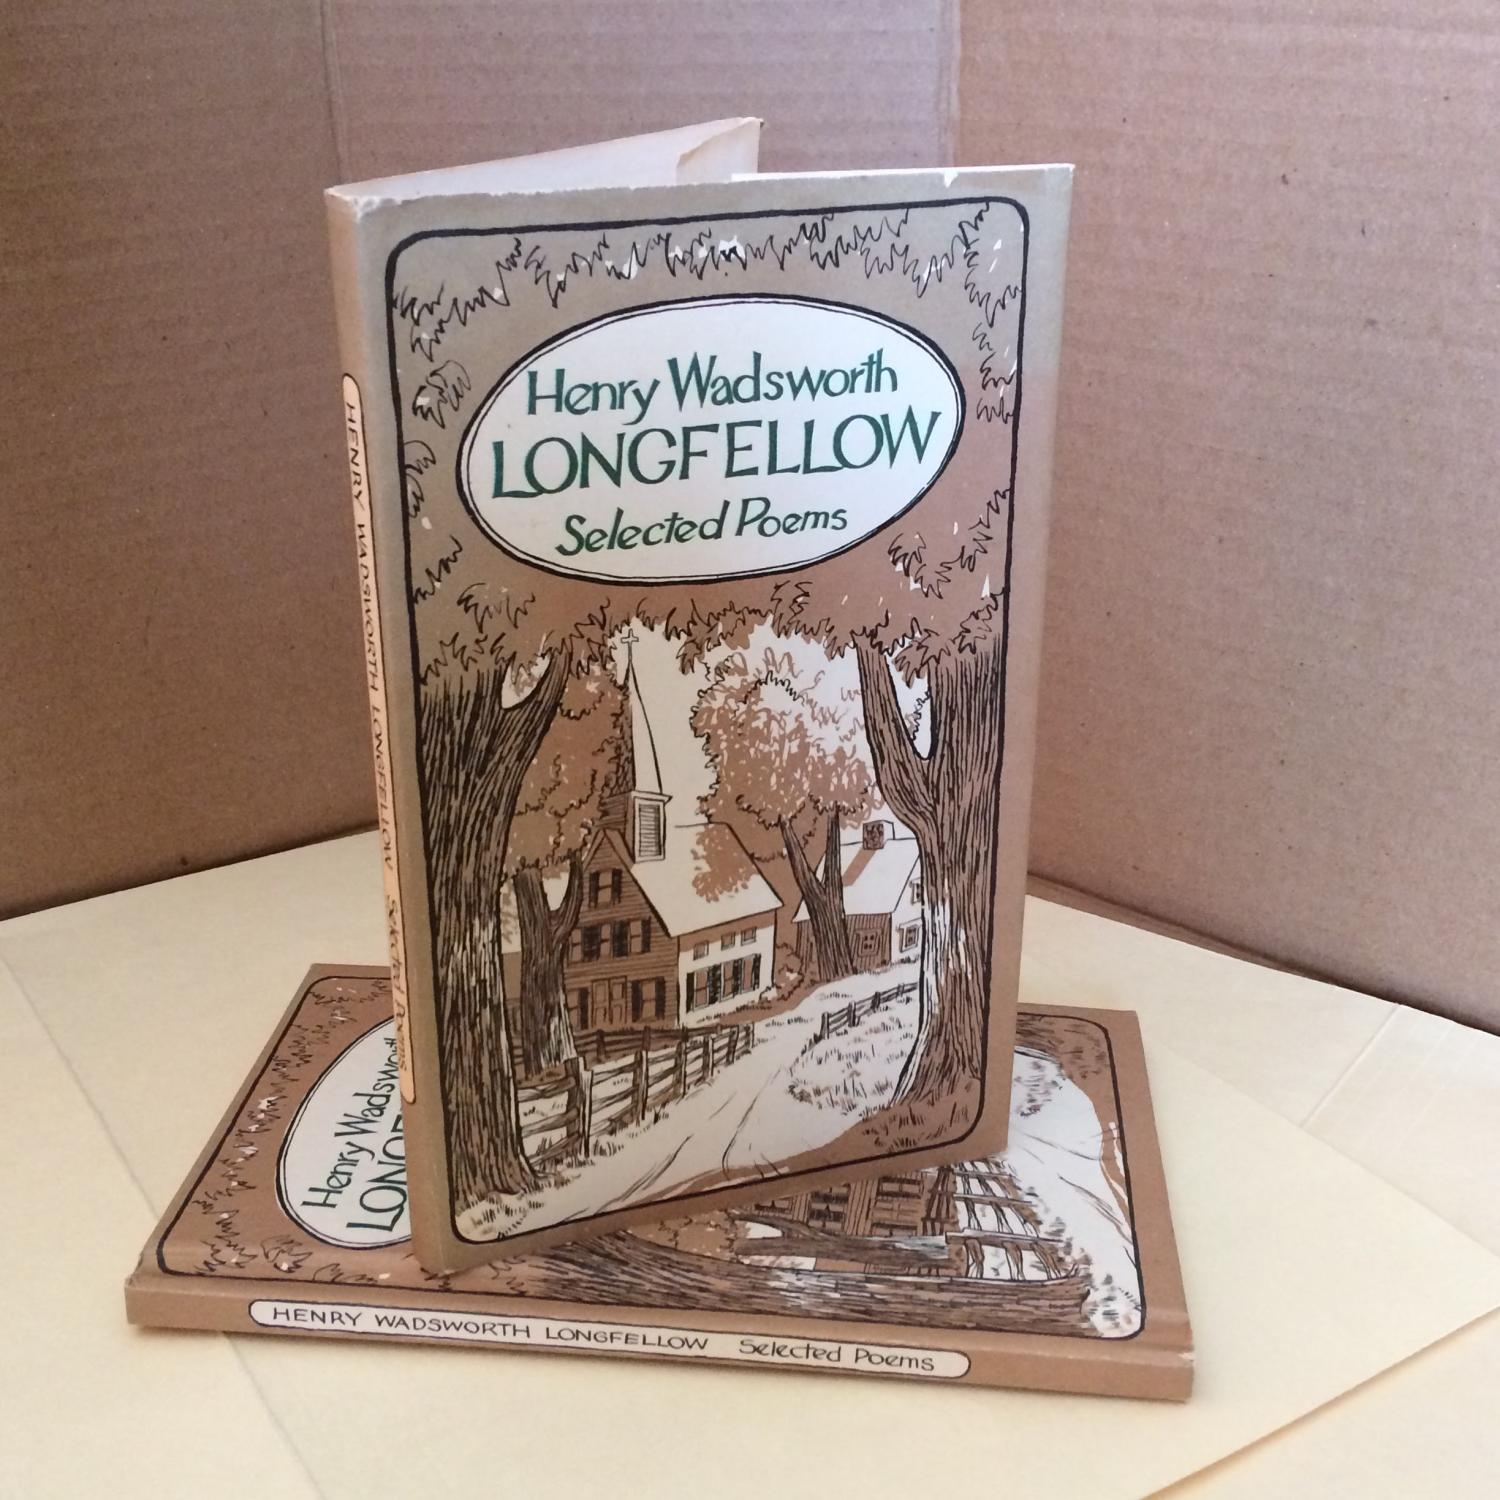 Henry Wadsworth Longfellow Selected Poems